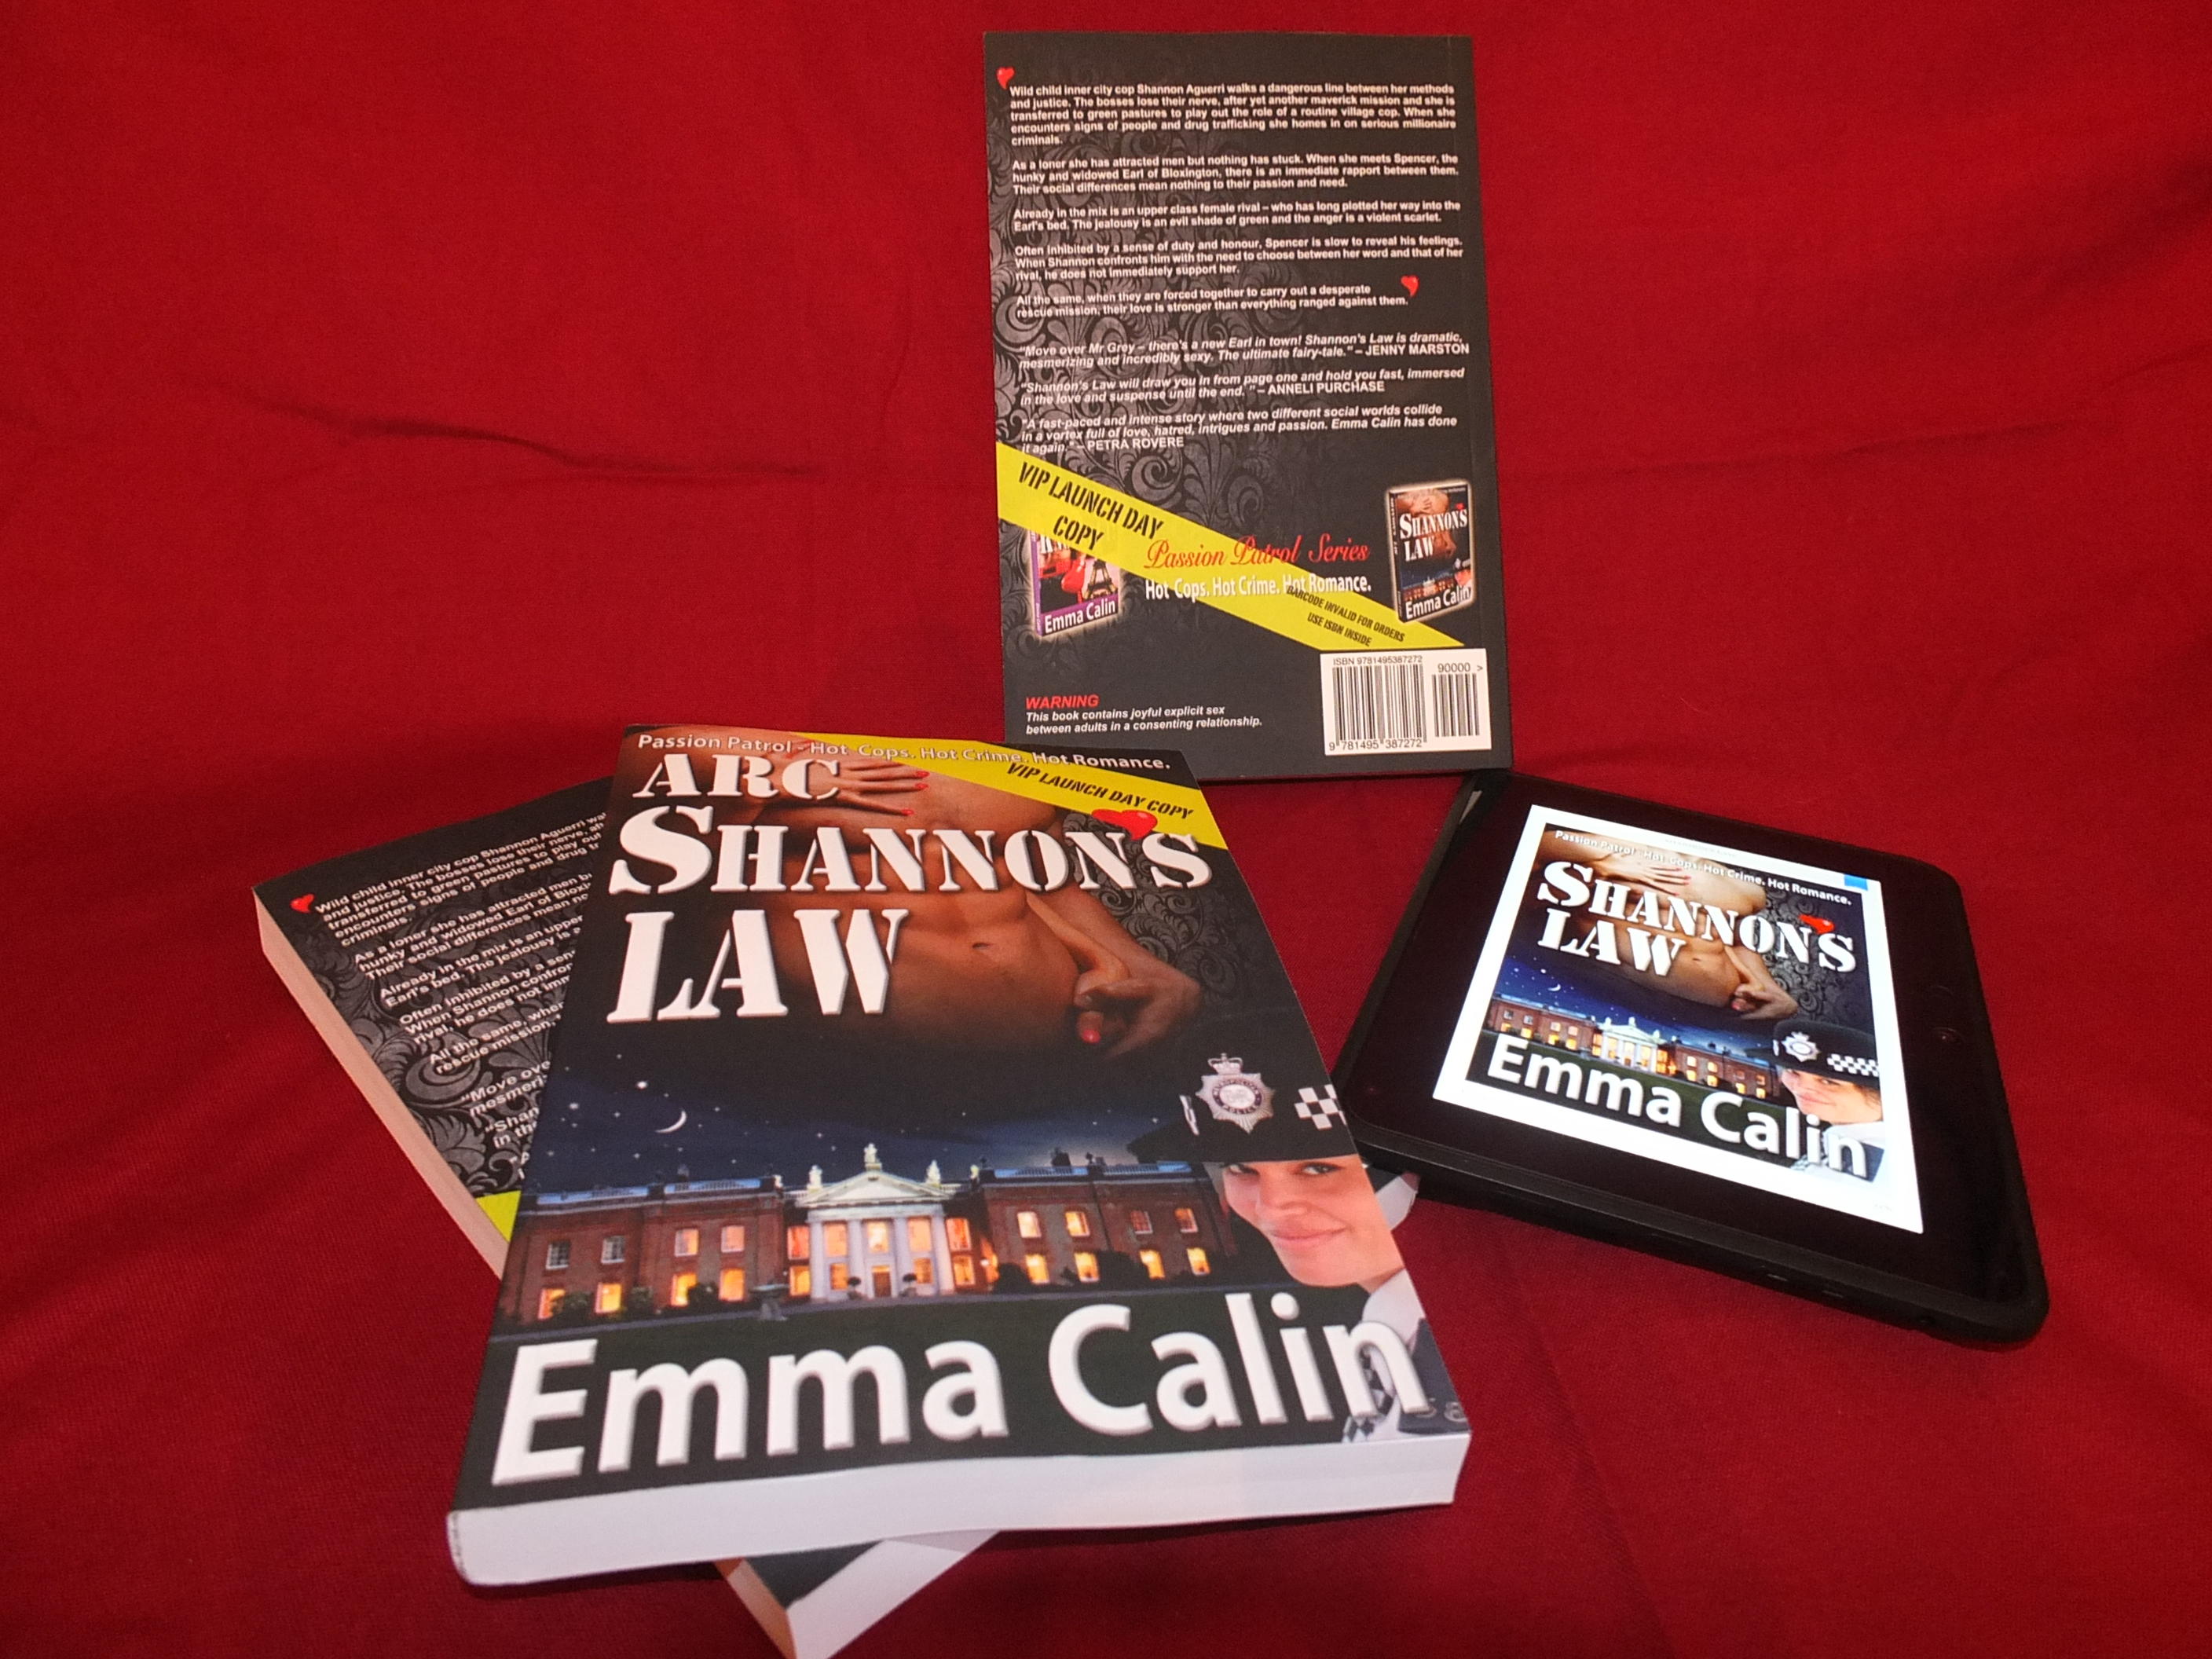 Shannon's Law back cover copy and shots